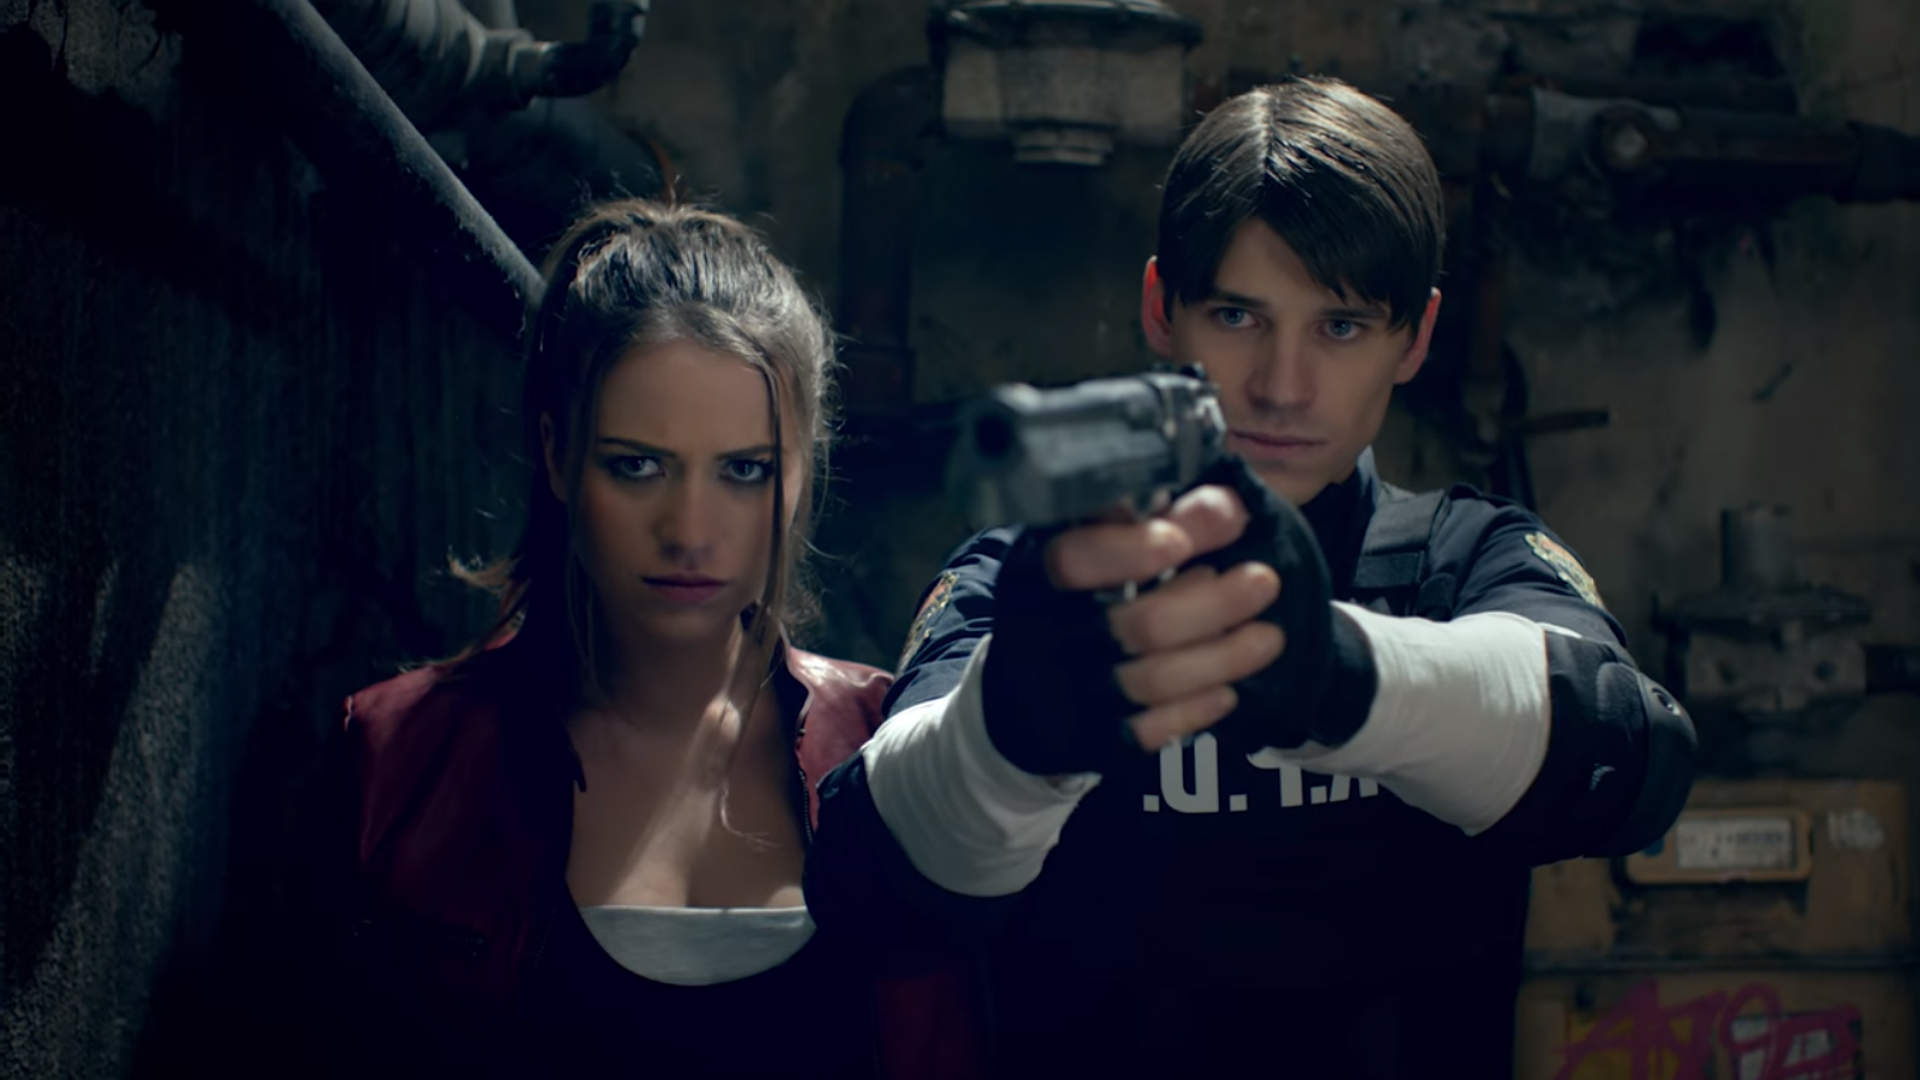 Resident Evil Series Live-Action or Anime